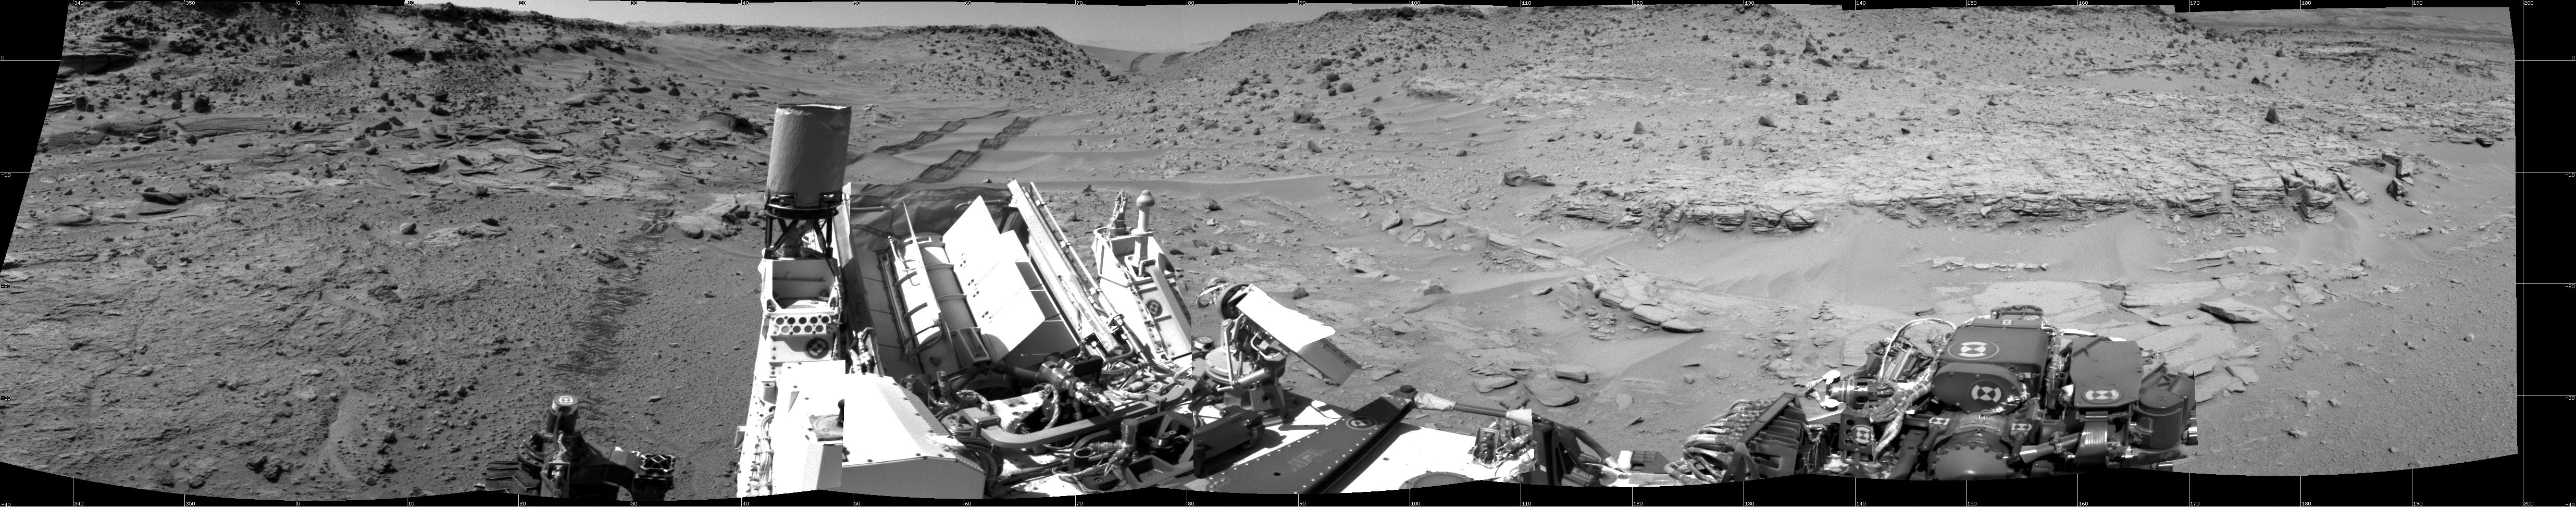 first mars rover invented - photo #30